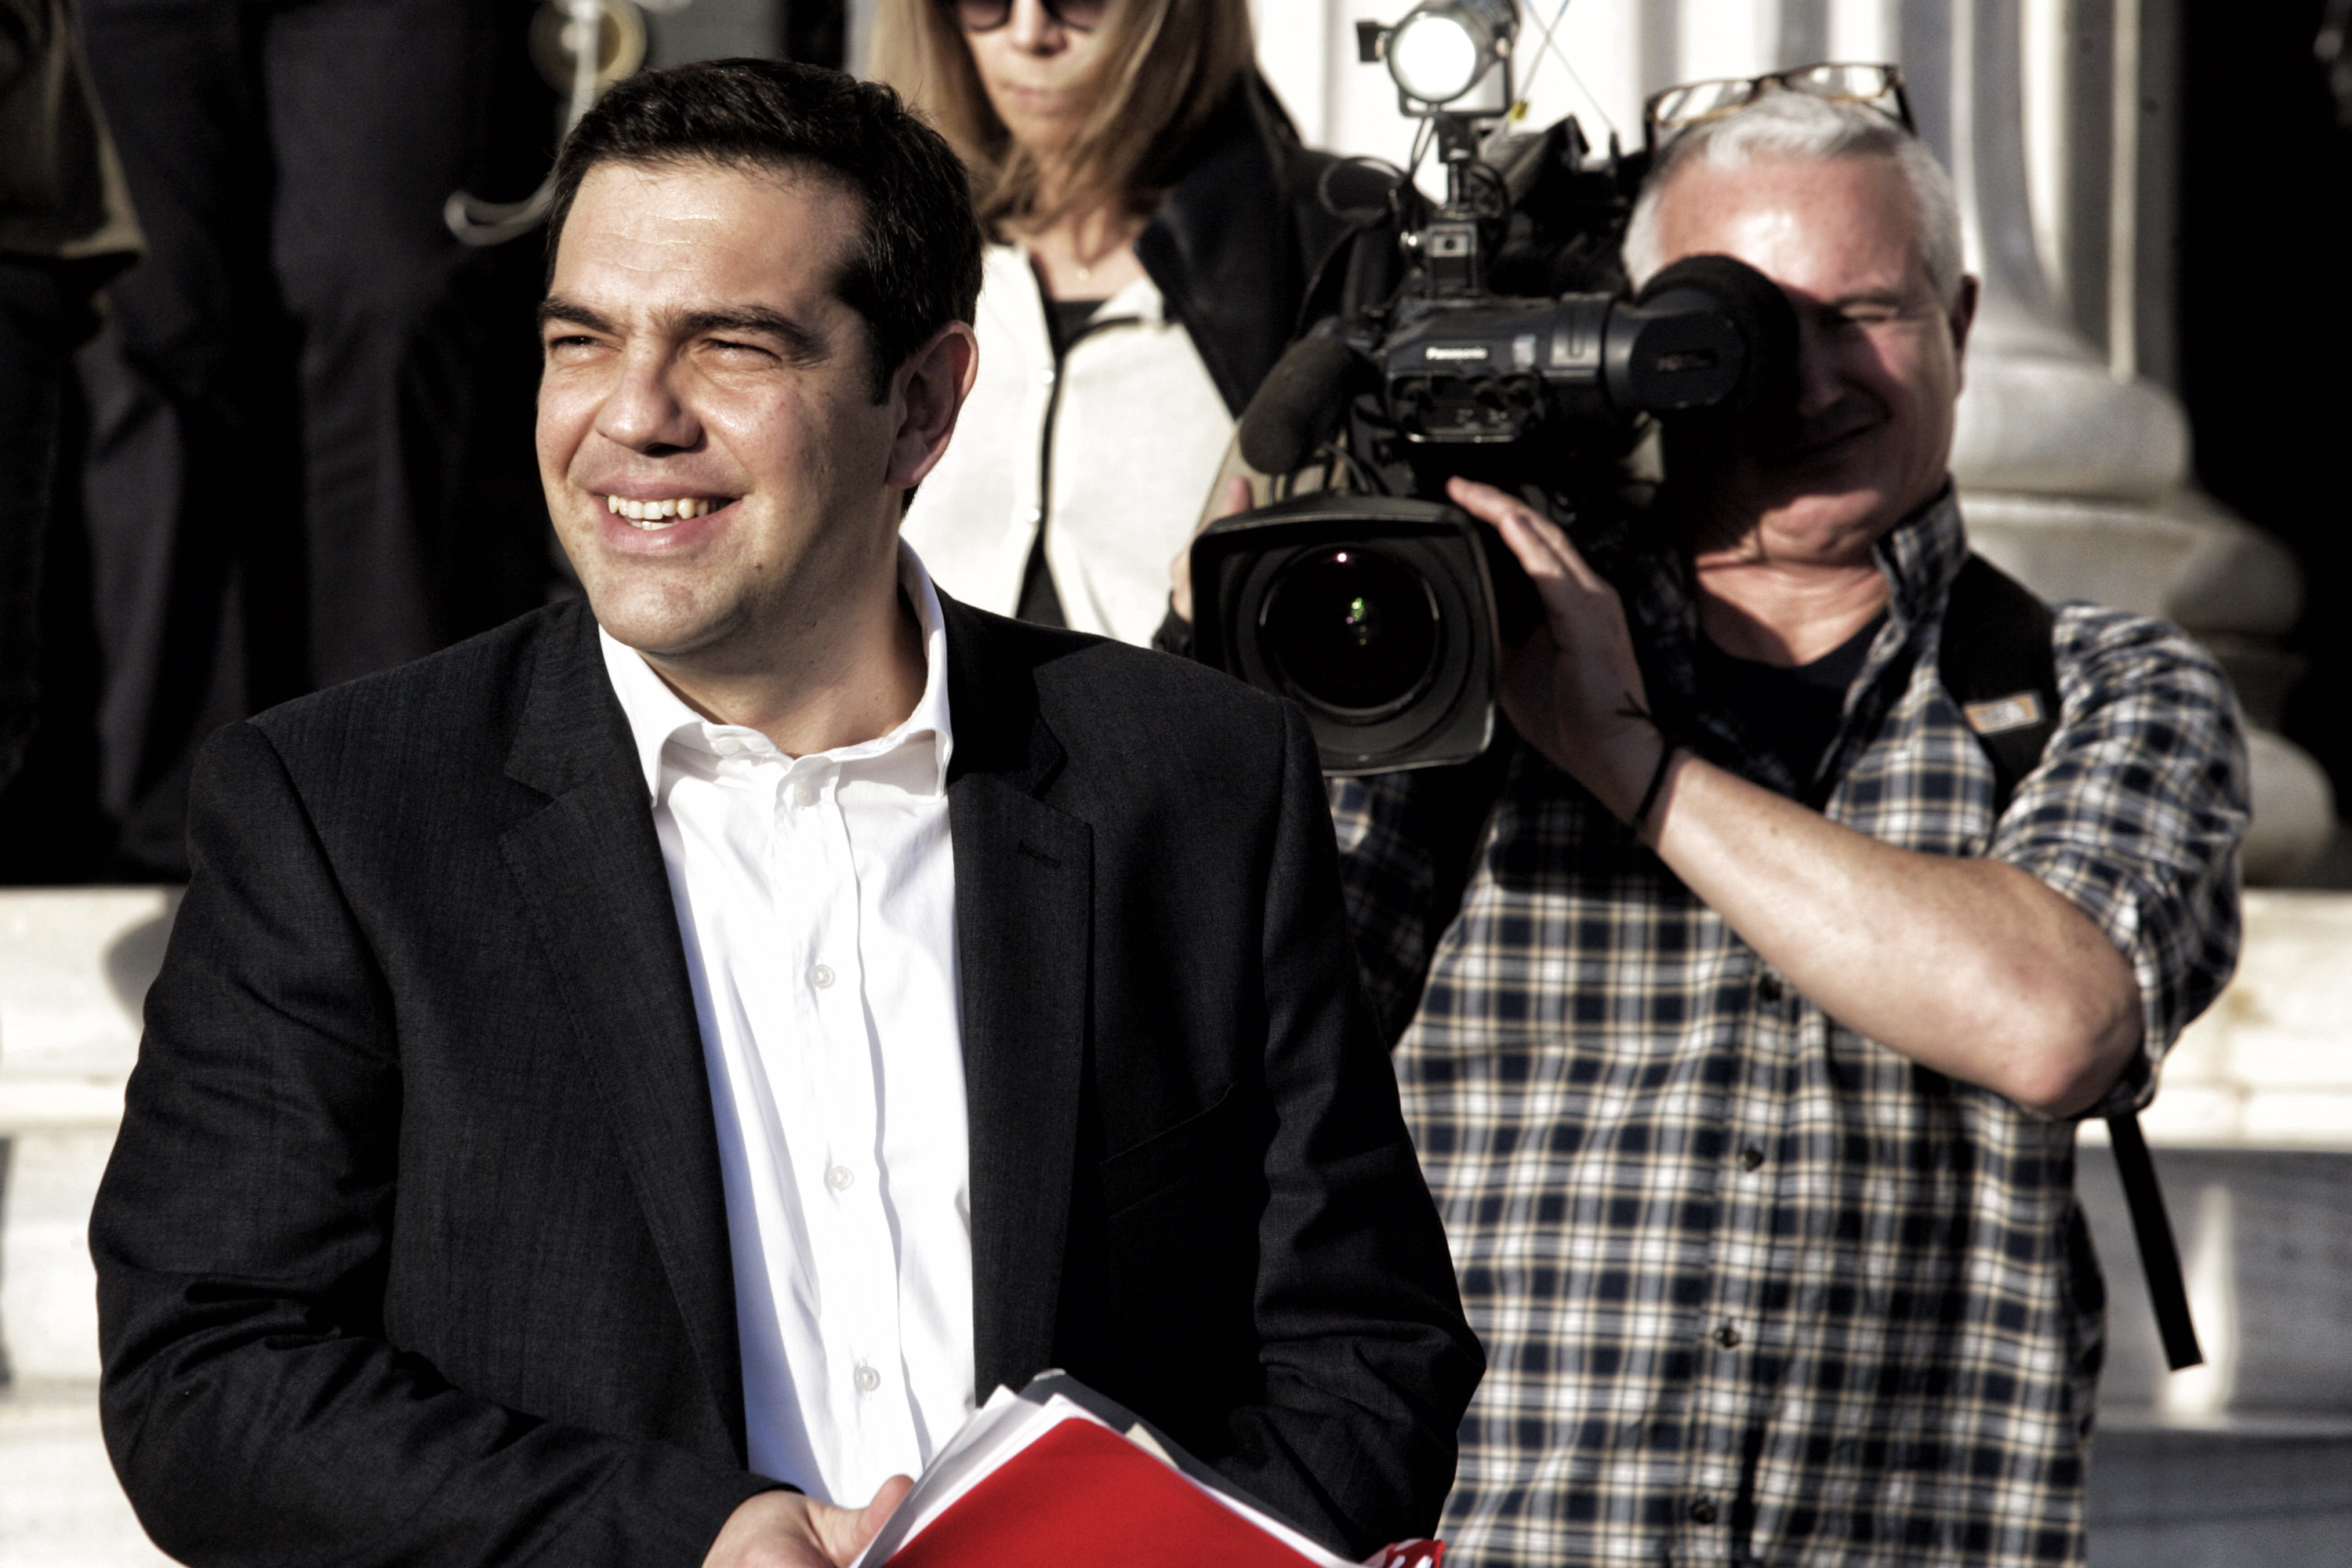 Public Meeting Of Greece's Syriza Party leader Tsipras In Athens